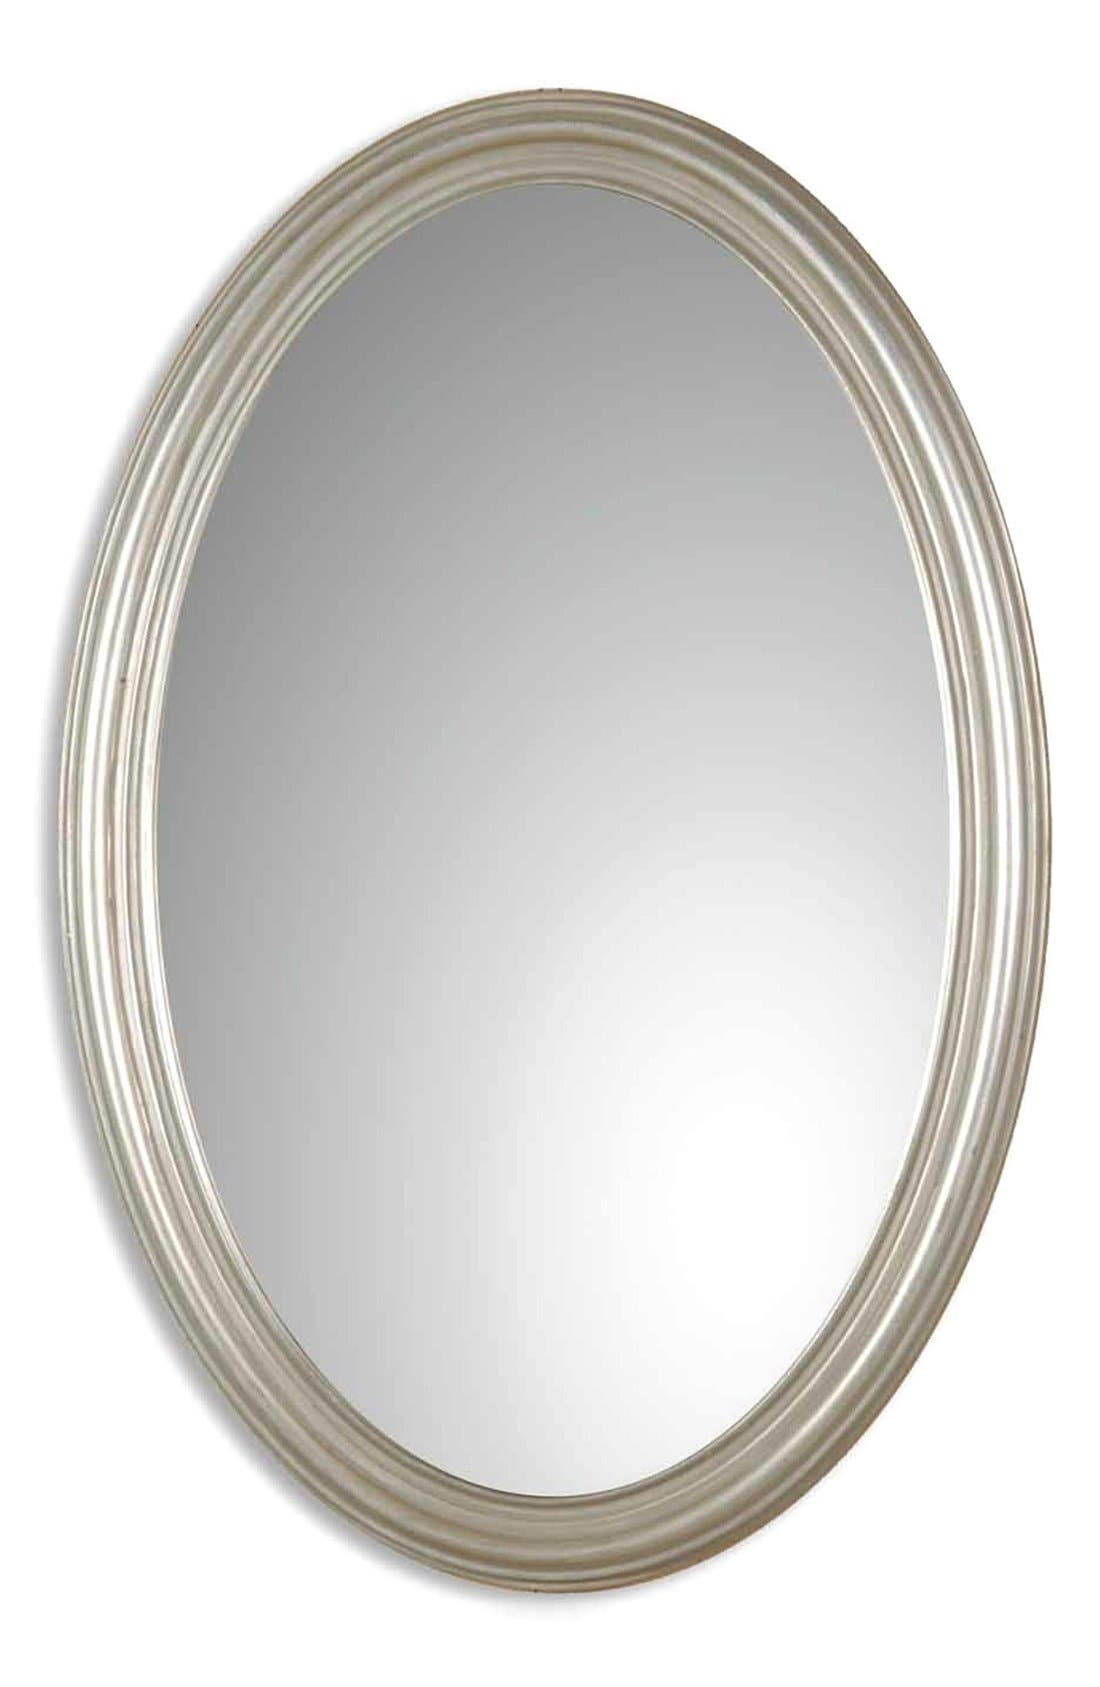 Uttermost 'Franklin' Wall Mirror